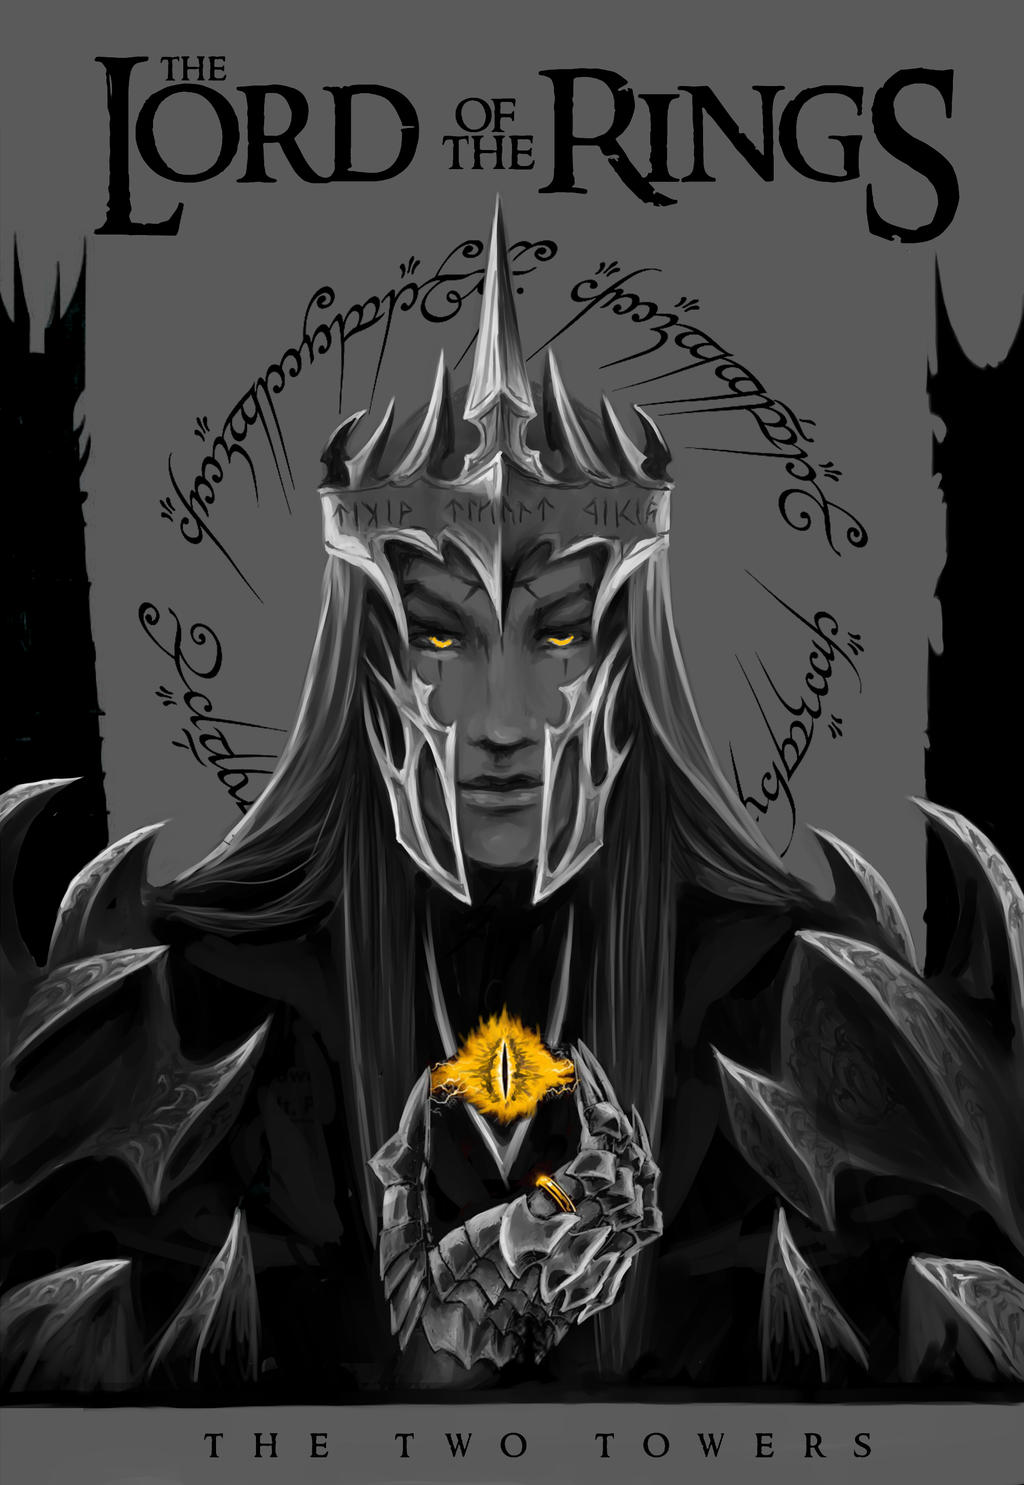 Lotr Book Cover Art : The dark lord lotr book cover by alef on deviantart